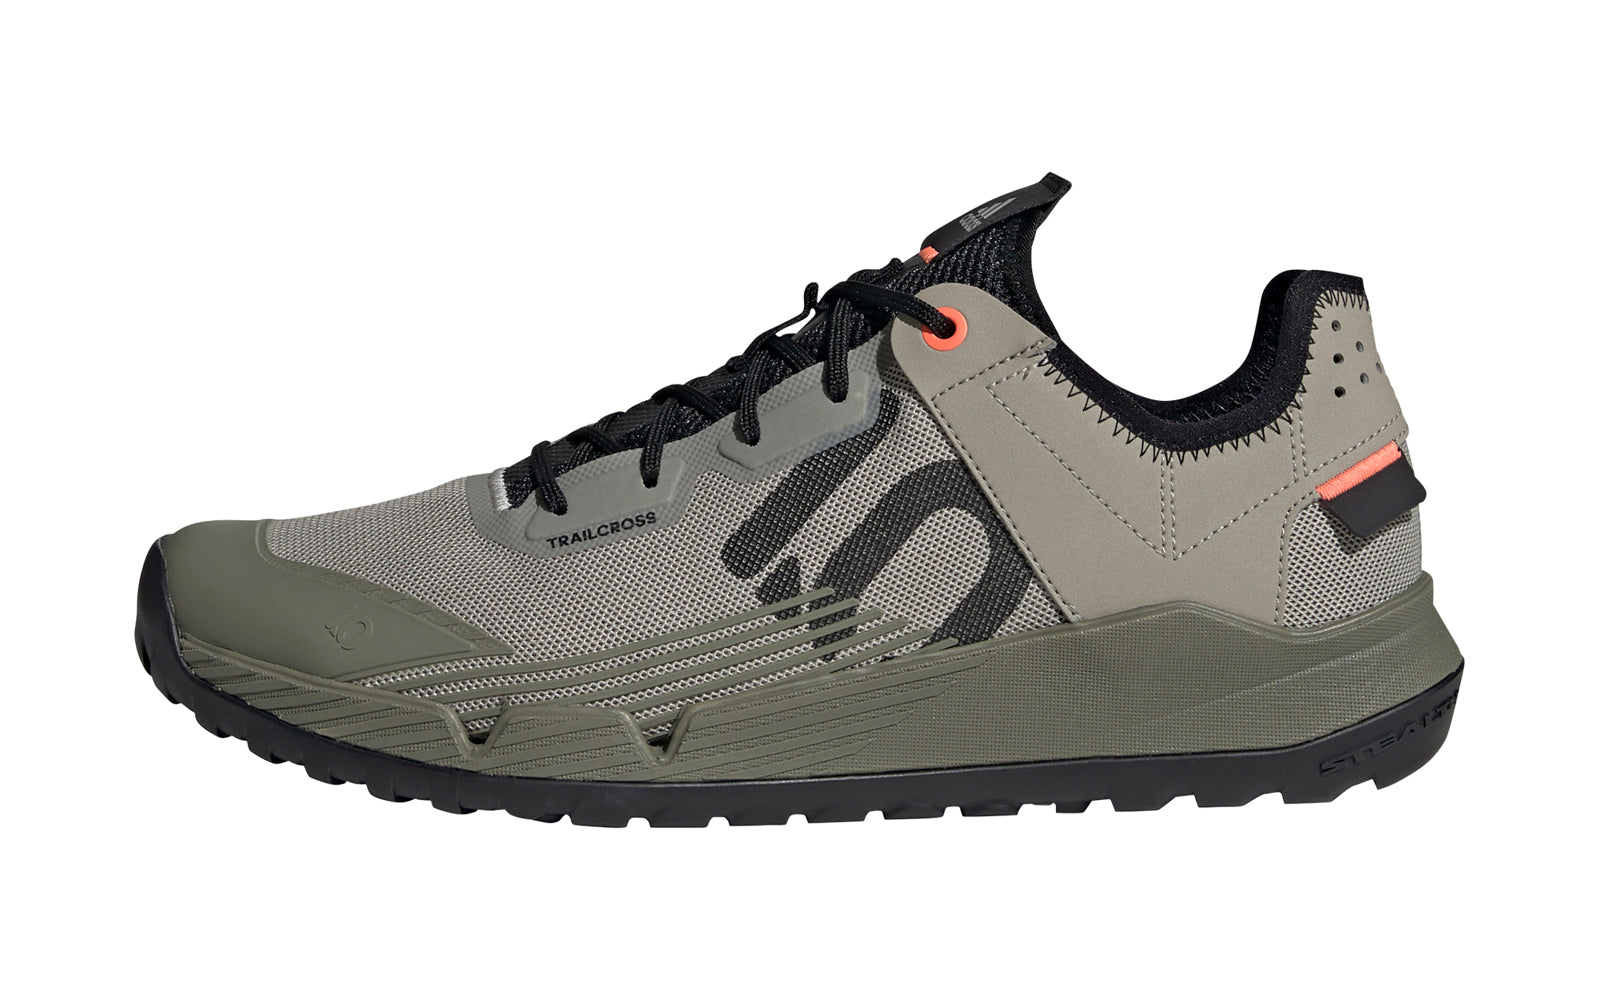 Men's Adidas Five Ten Trailcross LT Mountain Bike Shoe in Feather Grey/Core Black/Signal Coral from the side